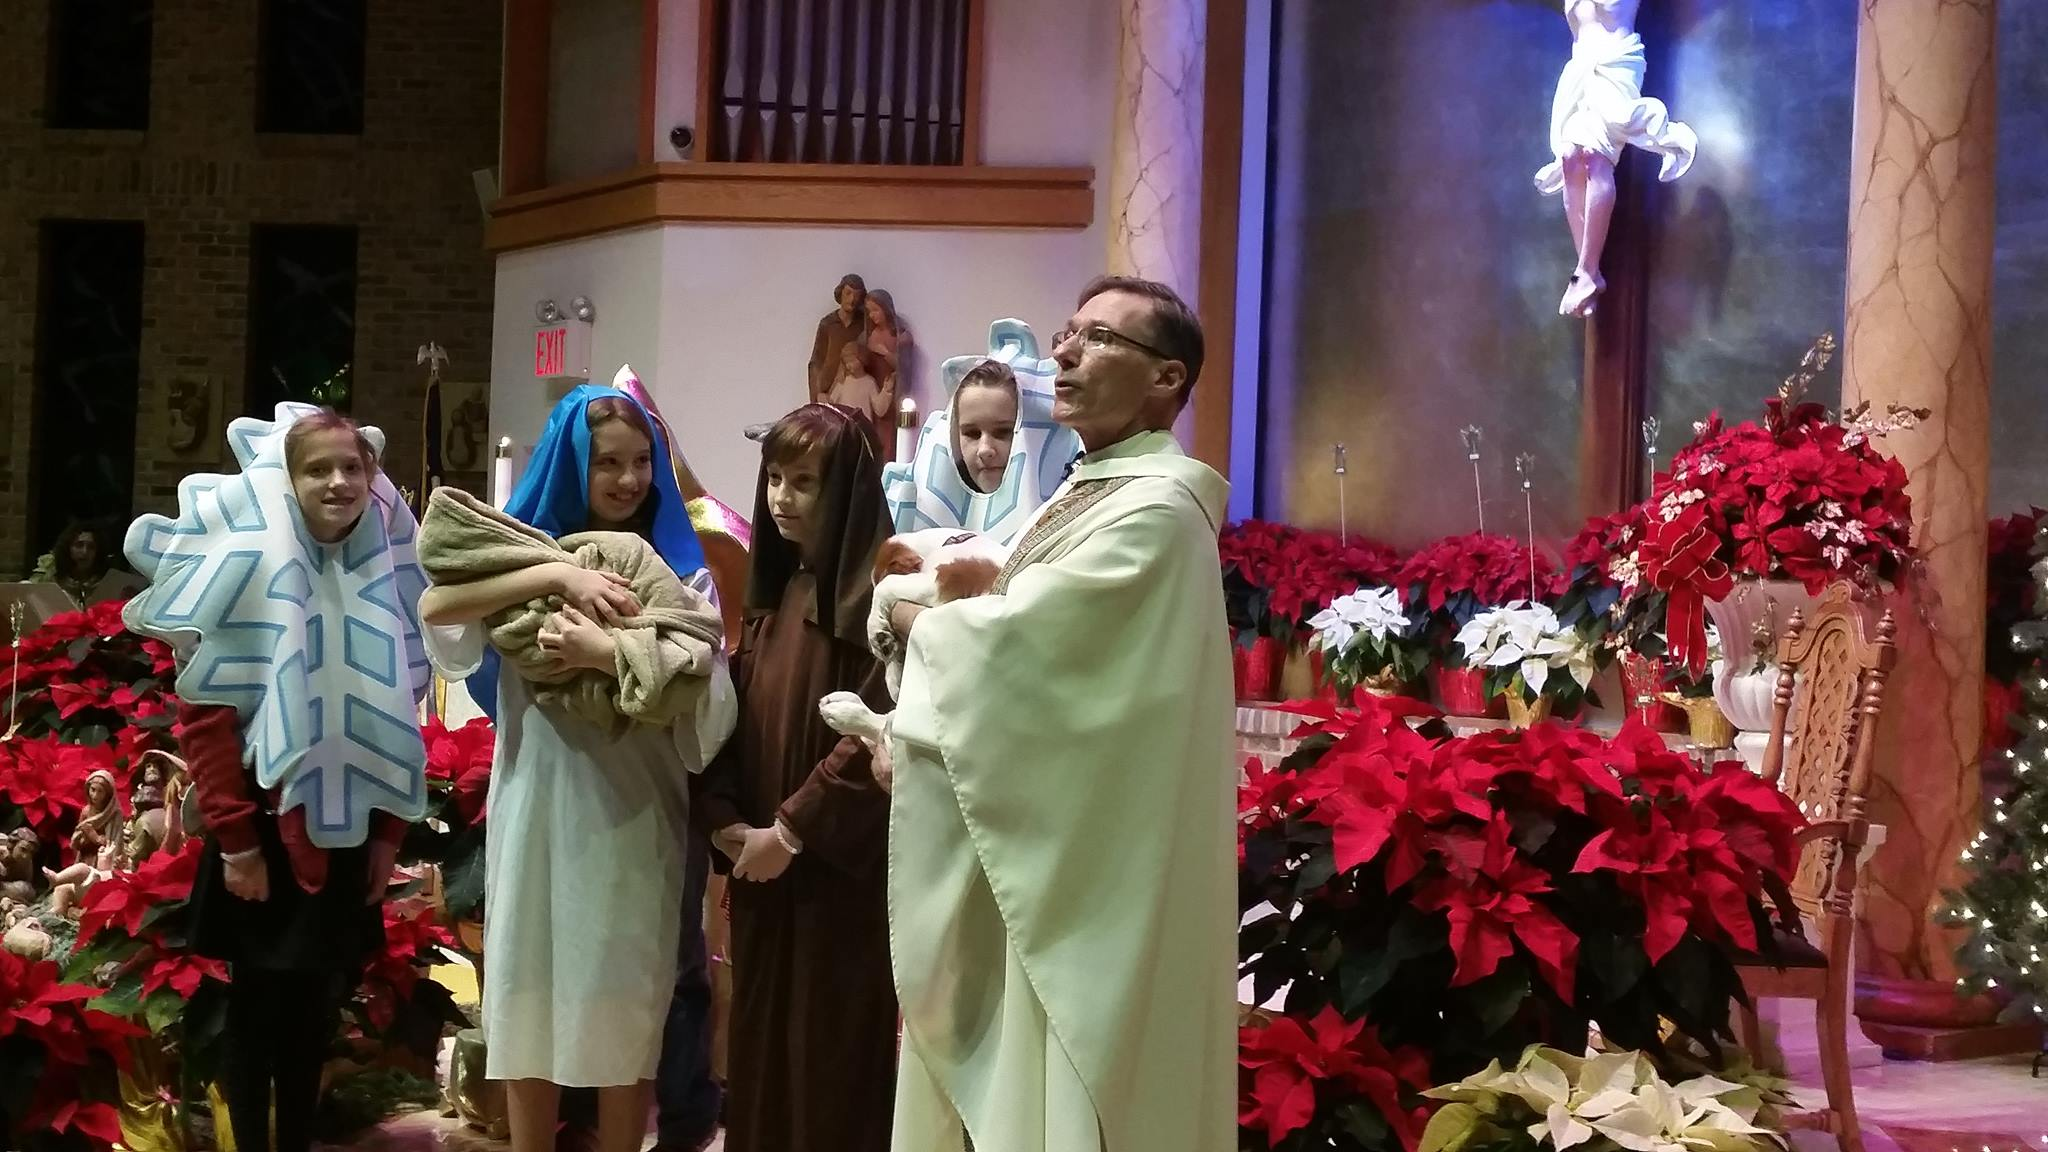 Christmas Mass with children and a dog